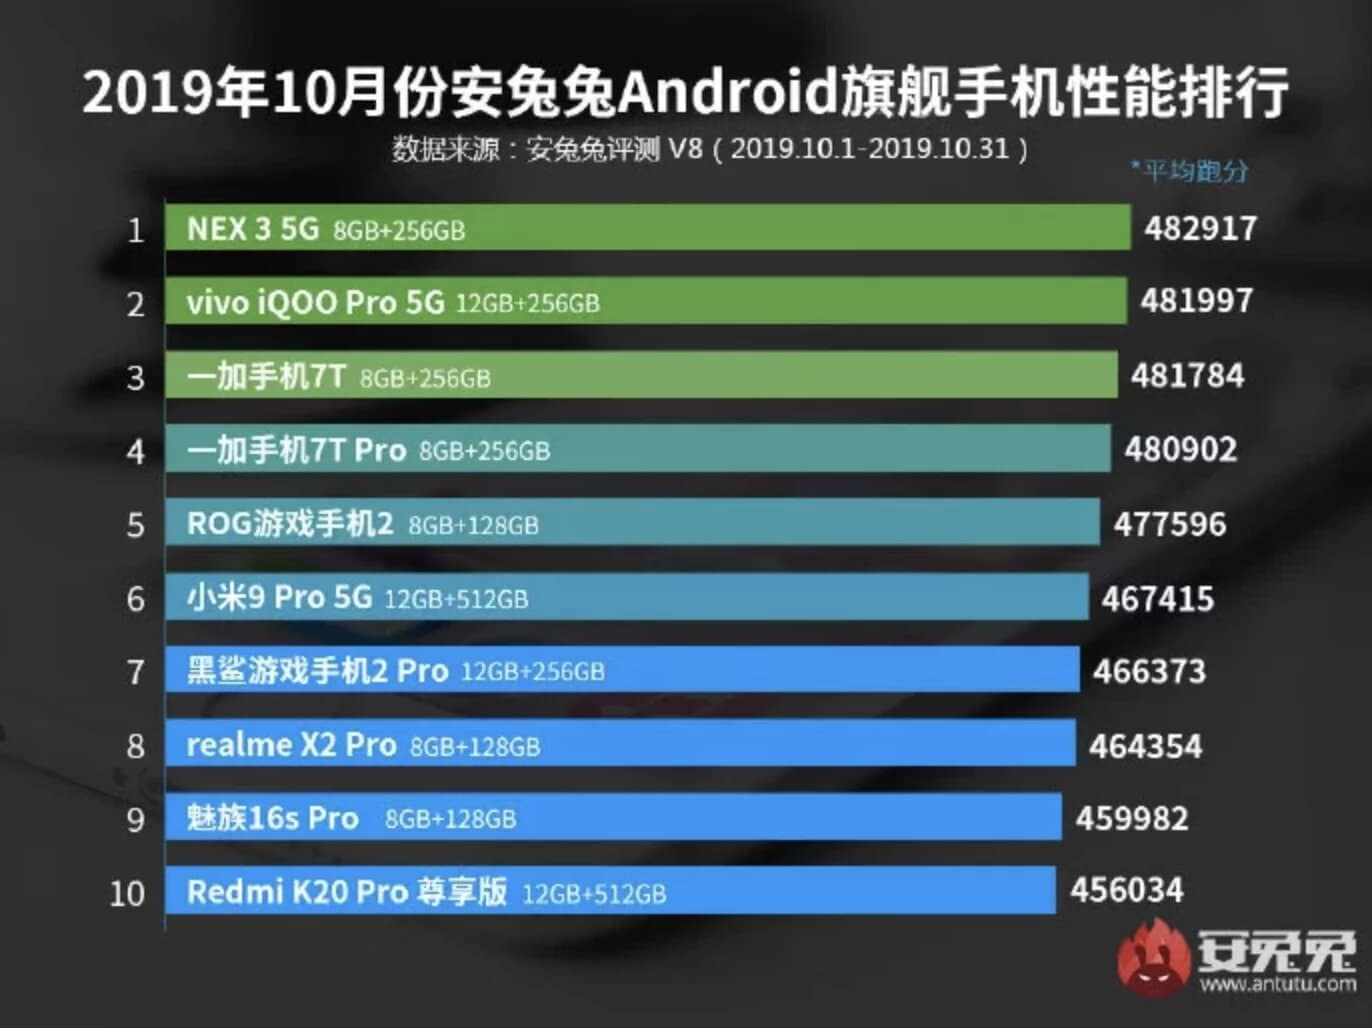 AnTuTu posted a rating of smartphone performance for October